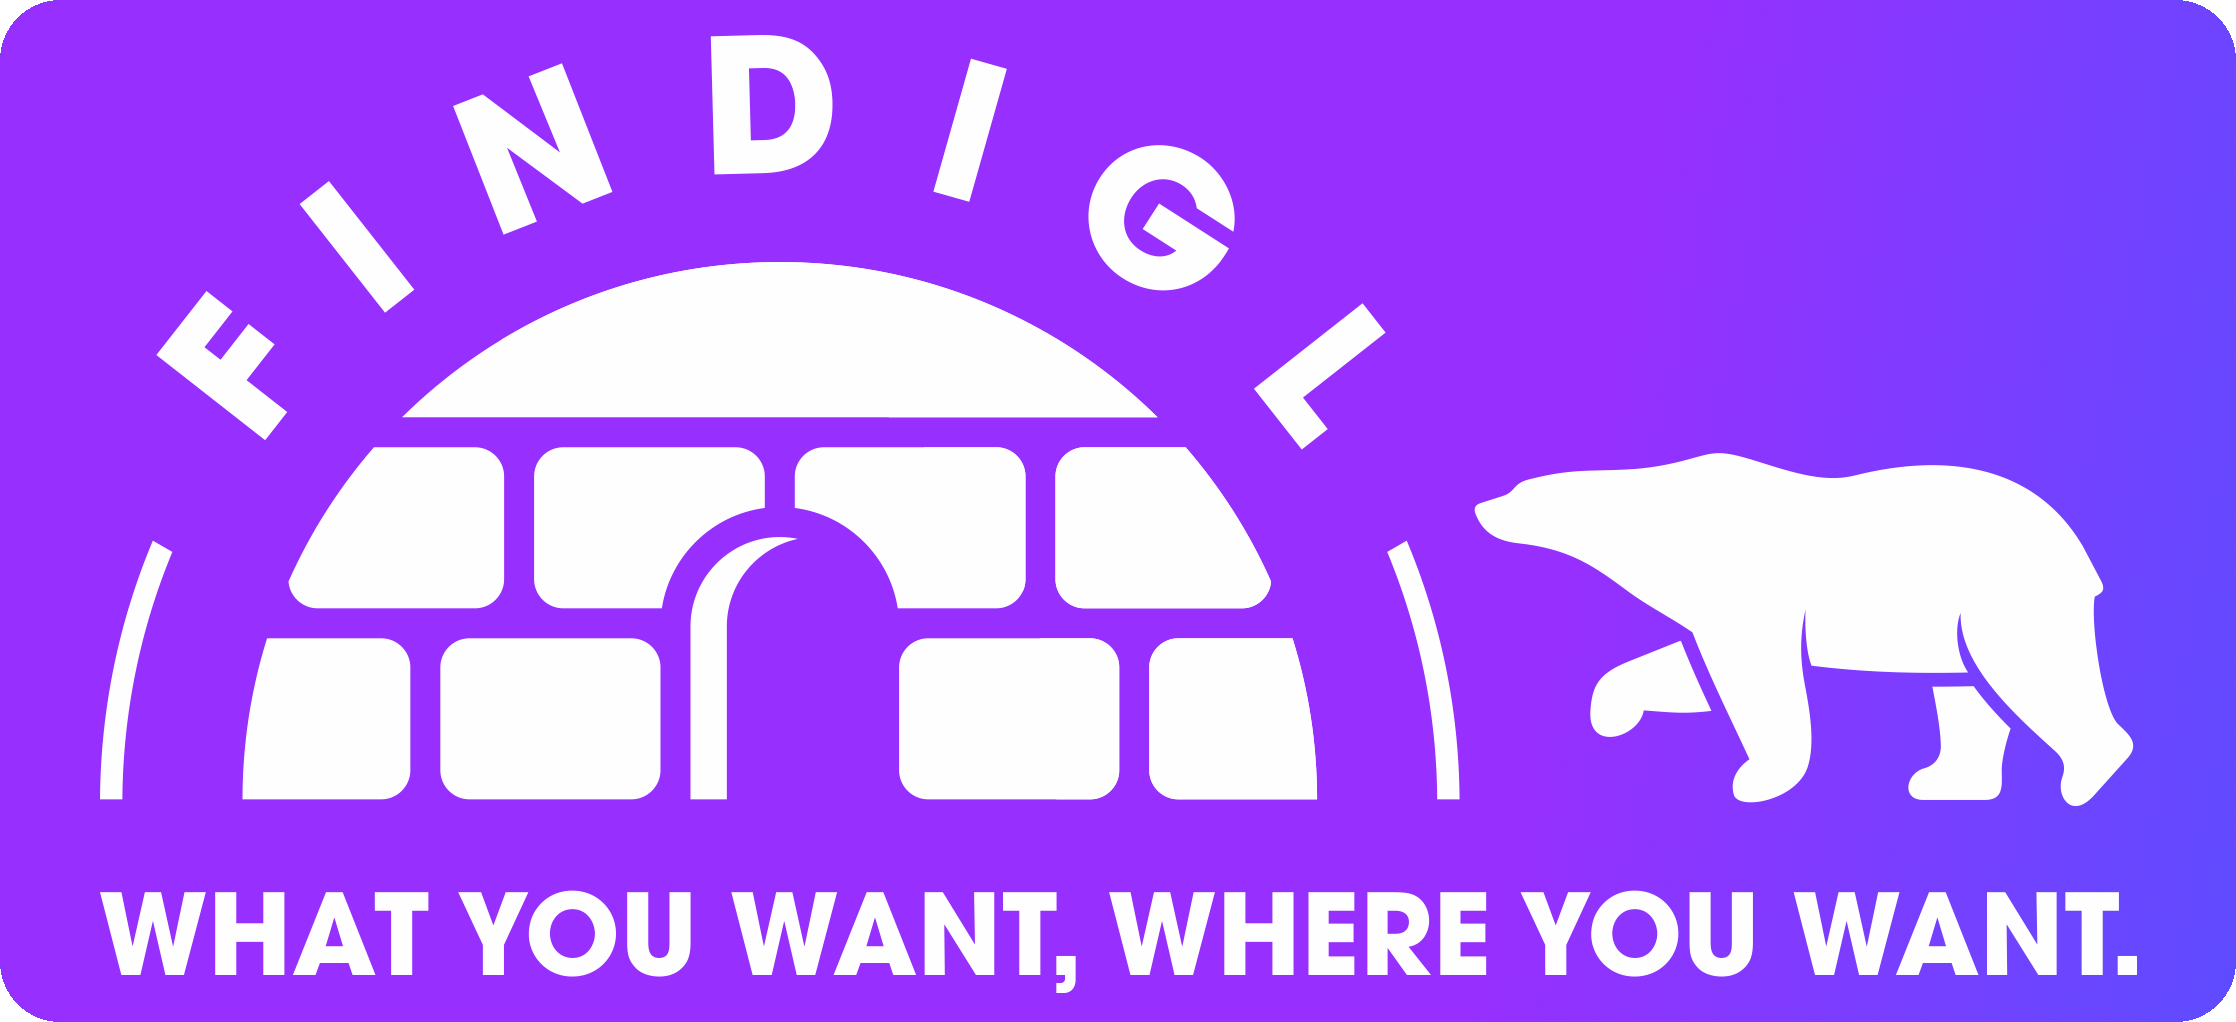 Cofounder needed to grow my property platform findigl - CTO/CCO/CMO or collaboration